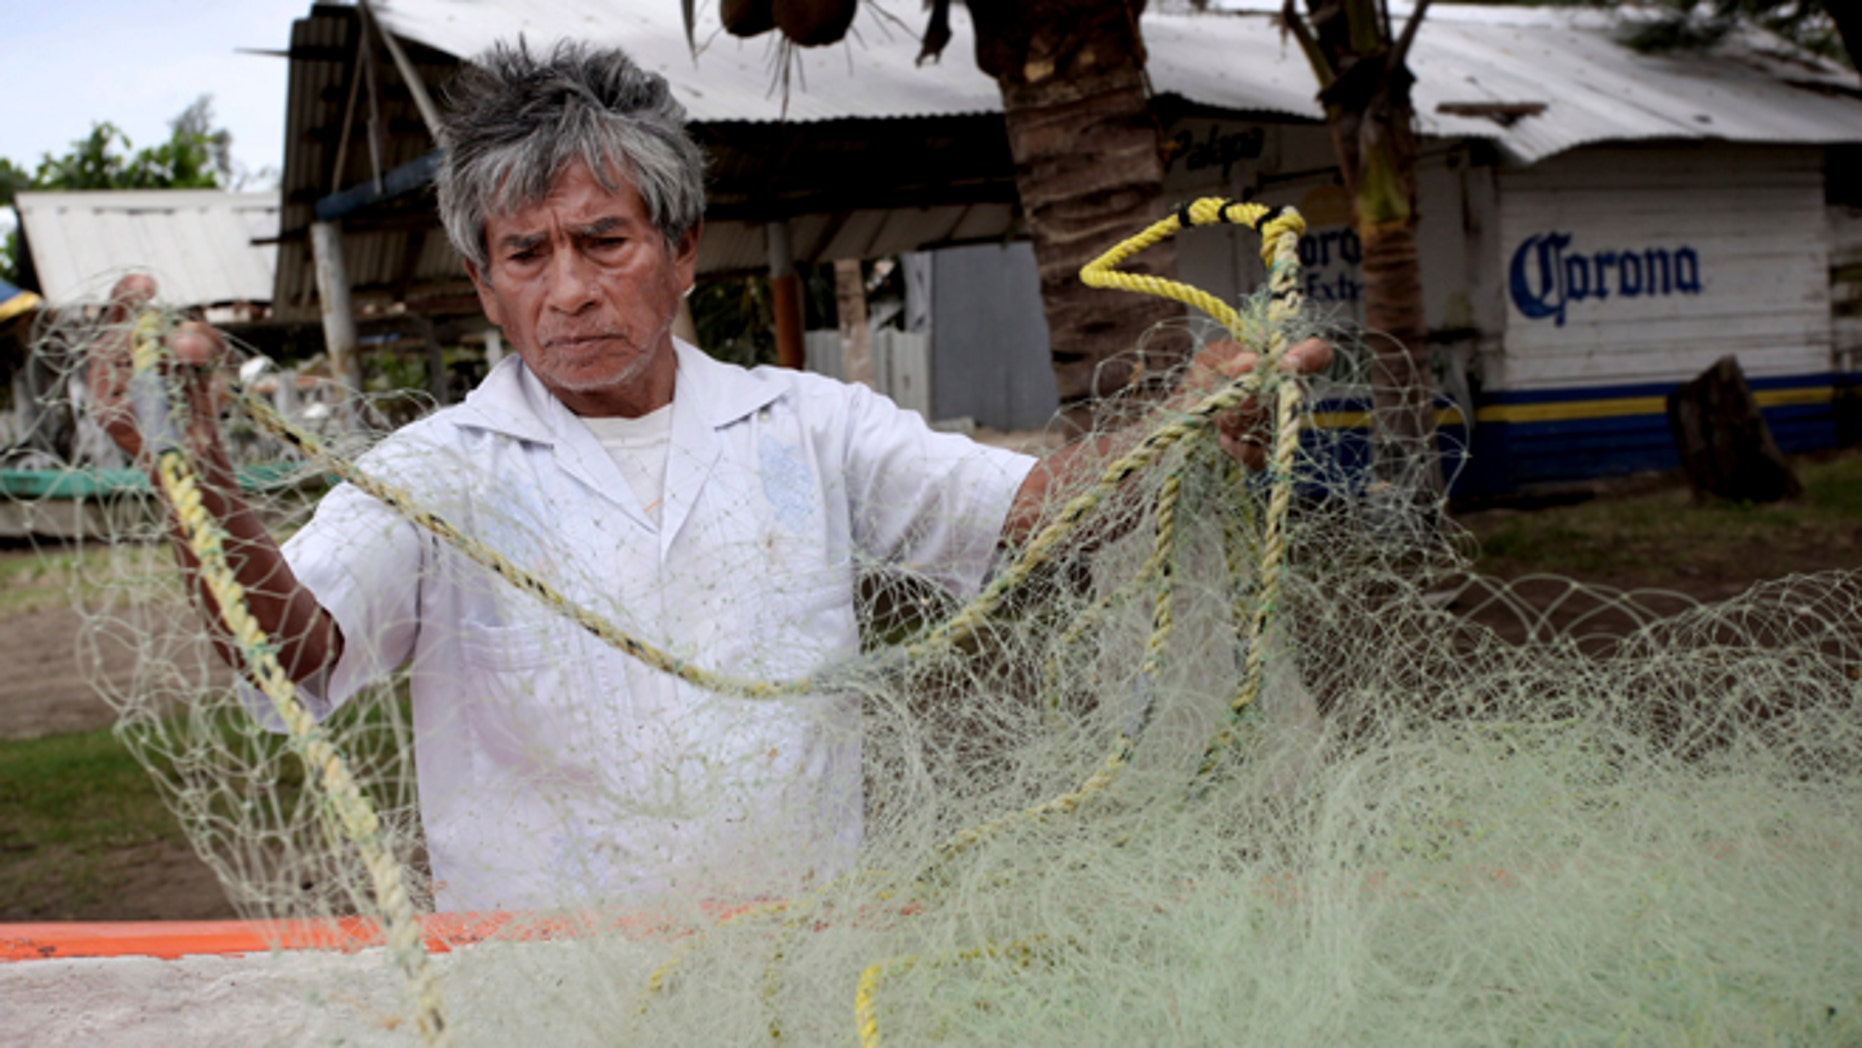 In this Nov. 9, 2013 photo, fisherman Raul Hurtado, 64, checks his nets outside of his small shack where he sells seafood in the port city of Veracruz, Mexico. Hurtado is a local legend, the man who found and lost millions of dollarsâ worth of Aztec gold almost four decades ago, was tossed in prison, then found peace making $150 a month selling octopus and other seafood from a thatched-roof shack. (AP Photo/Felix Marquez)